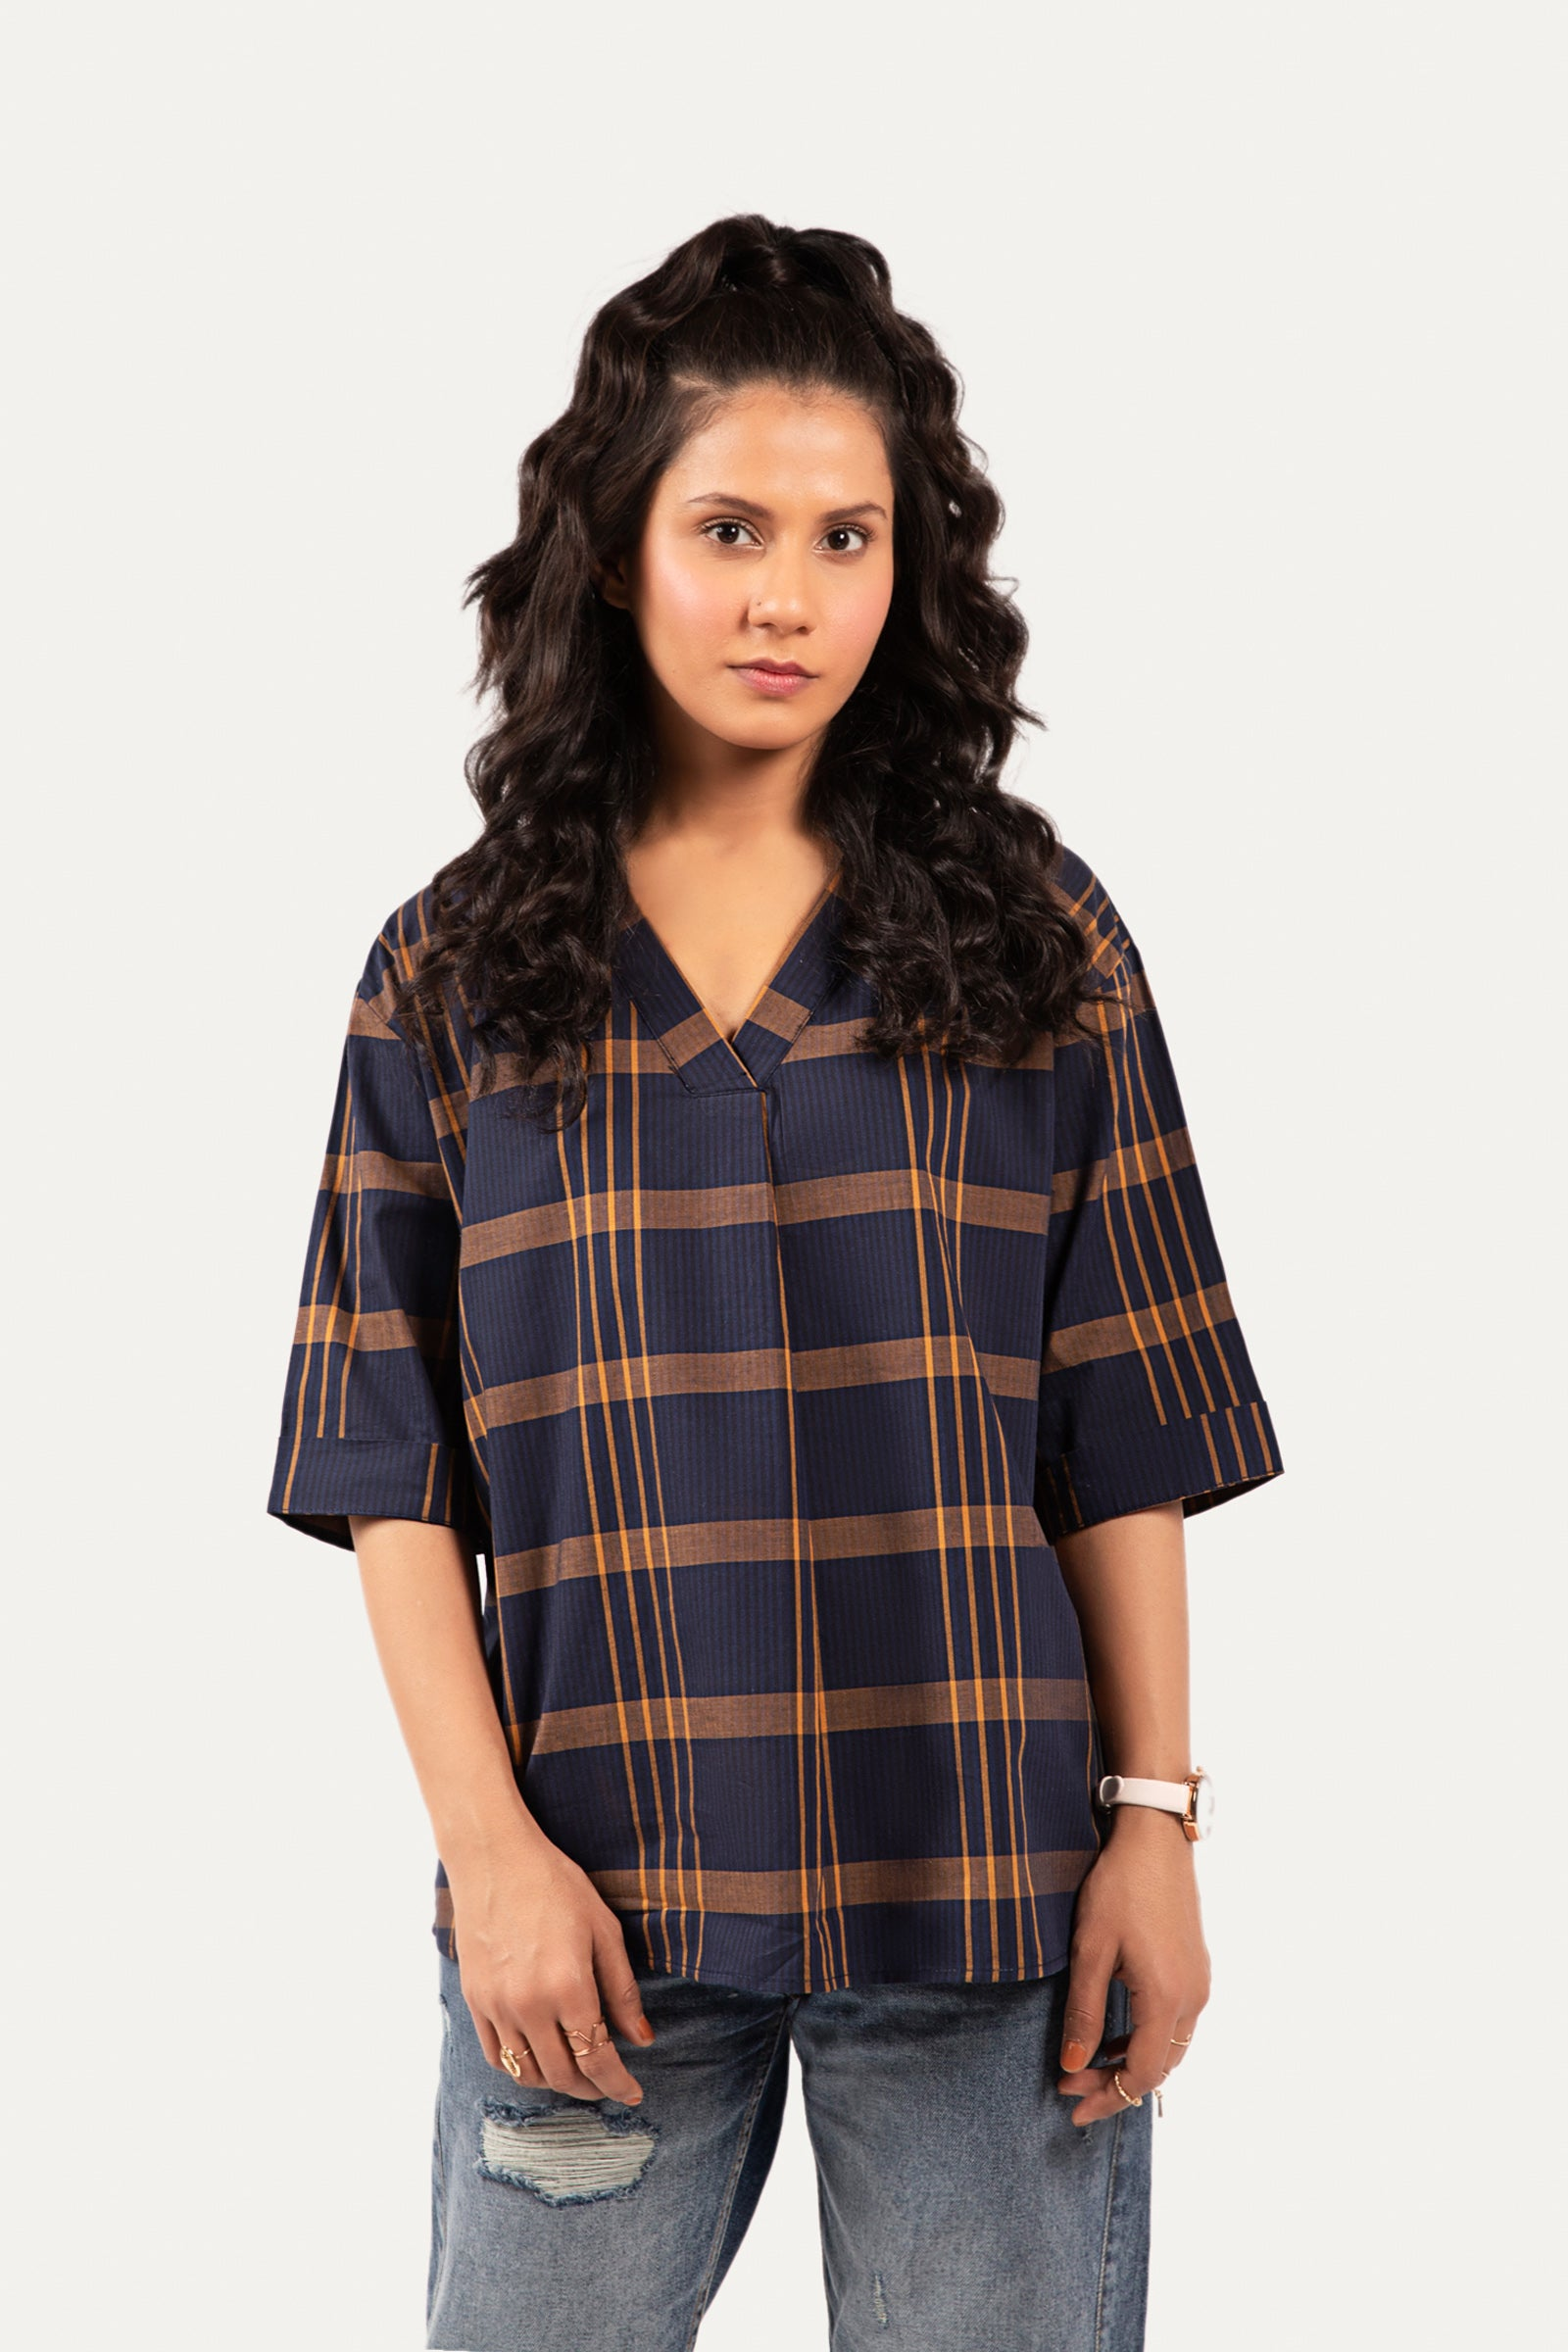 Chequered Top